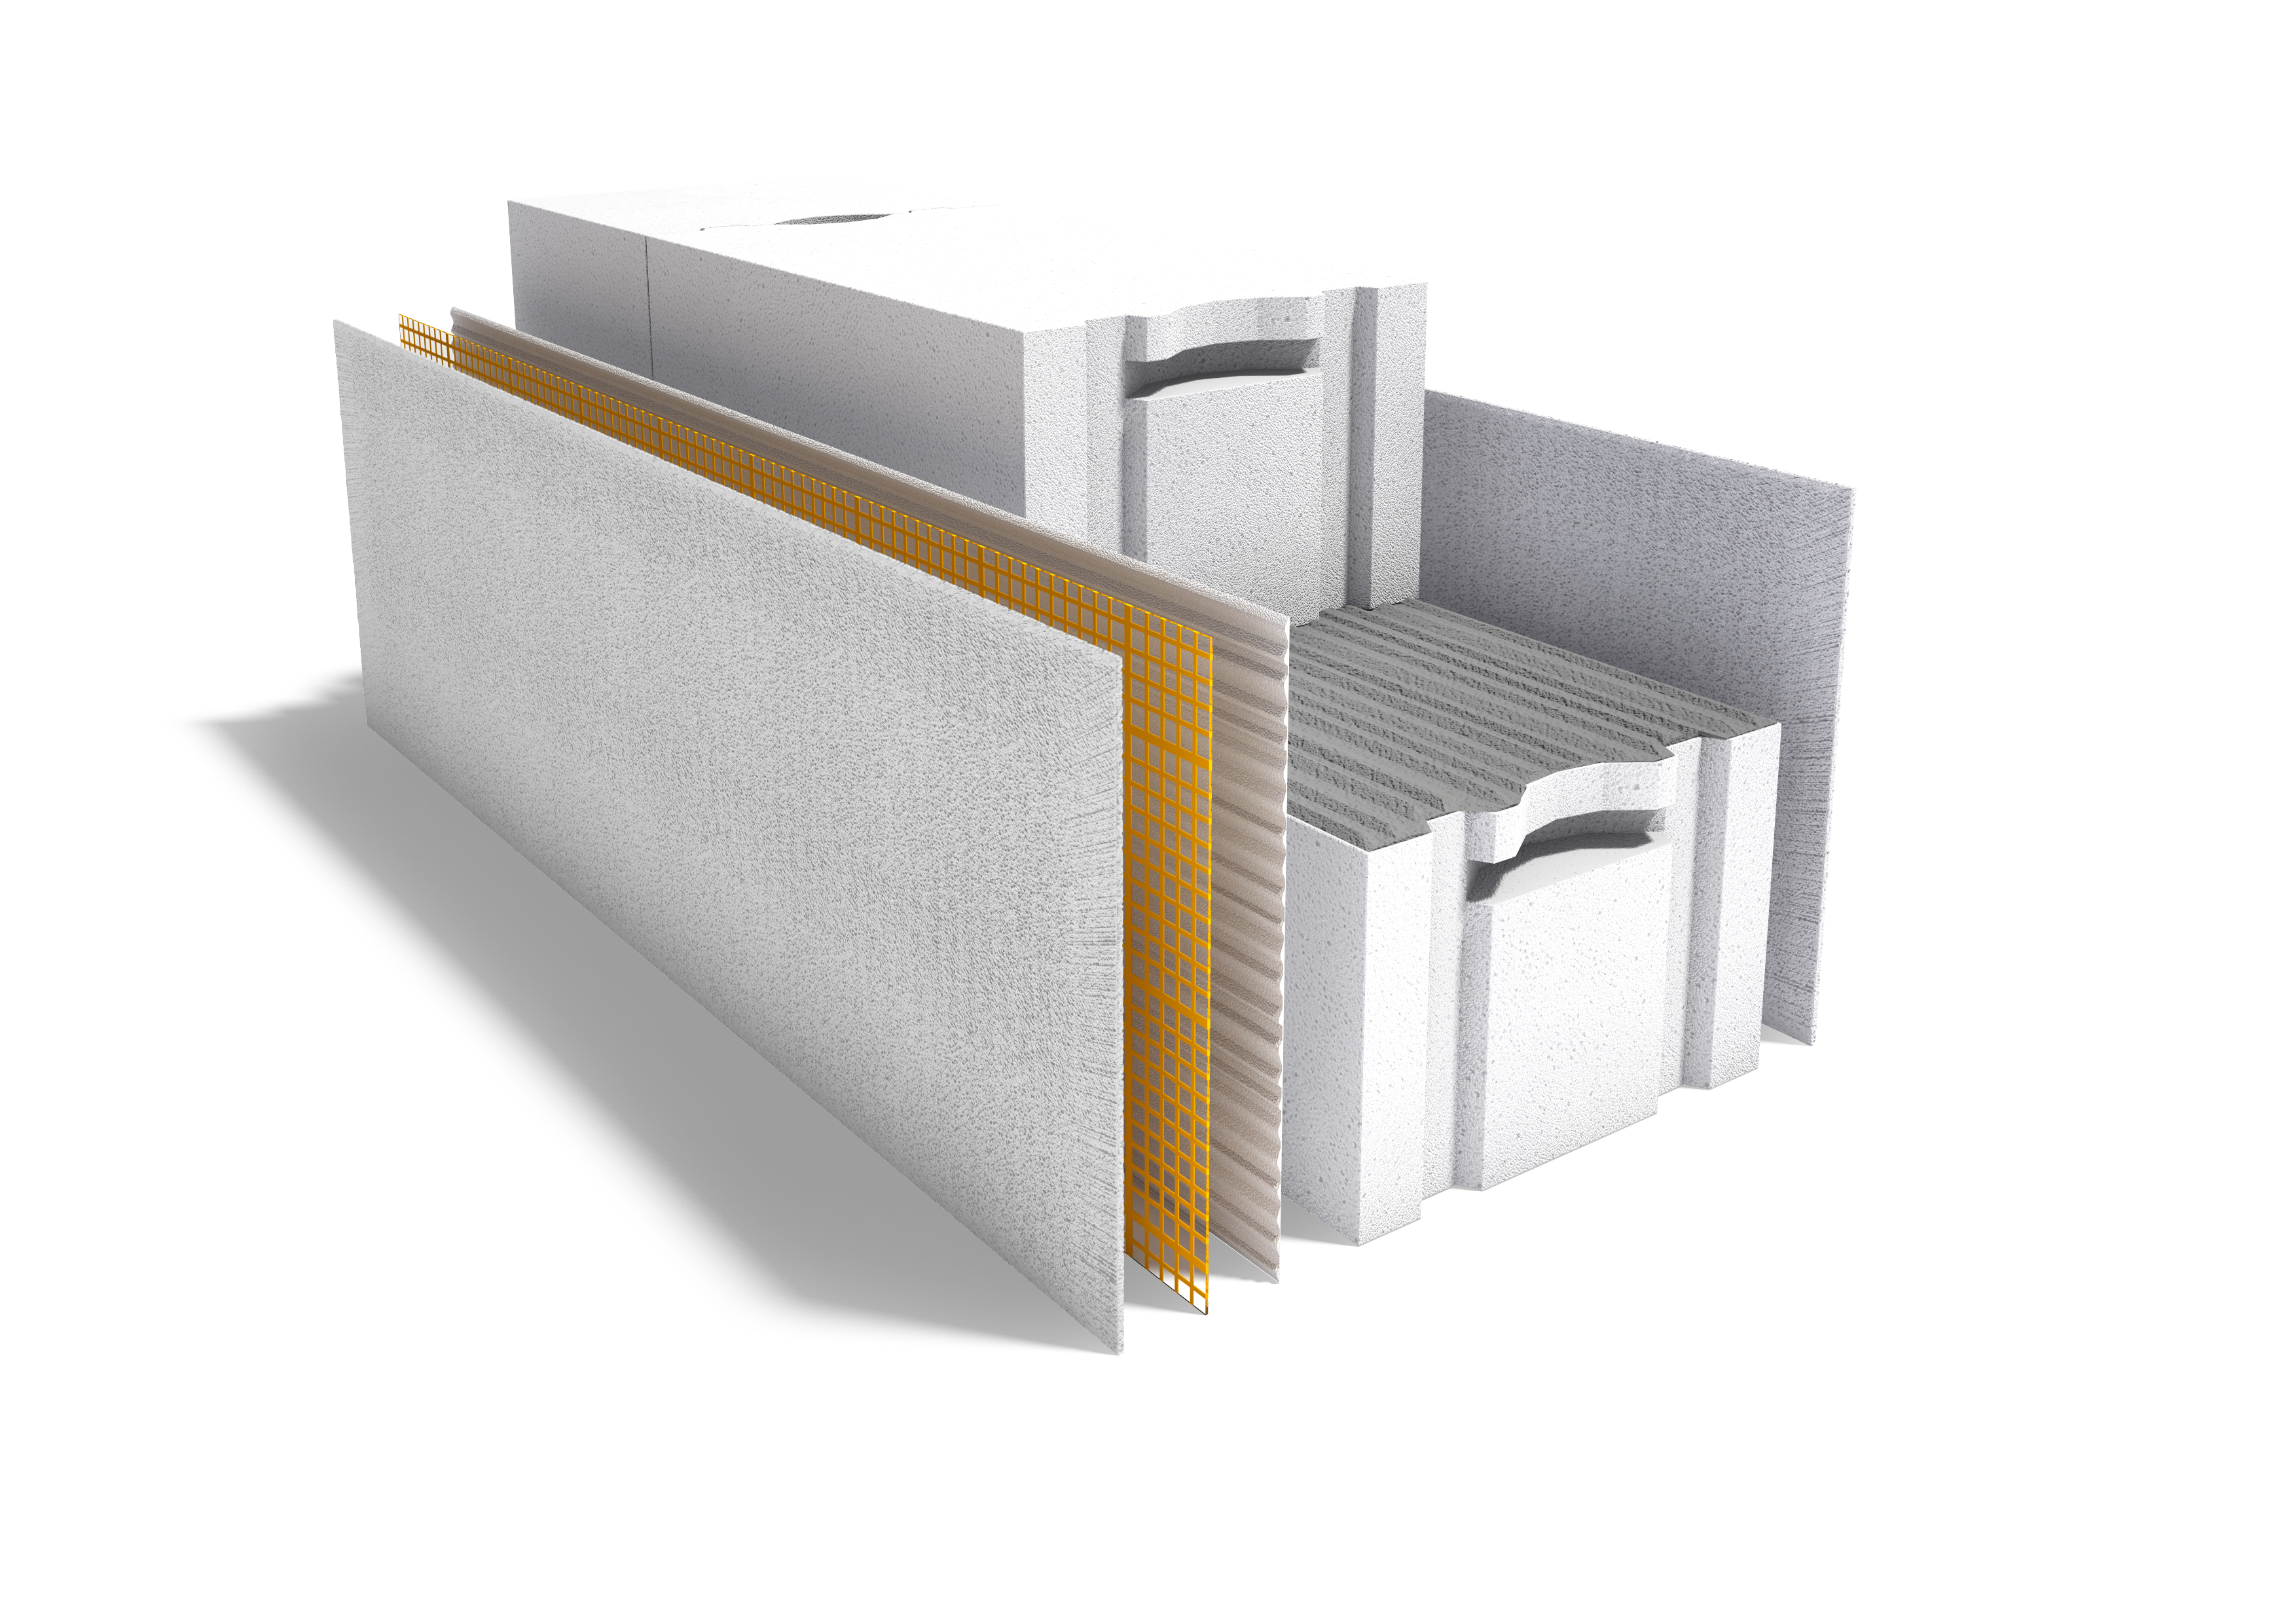 Ytong thermobloc monolithic